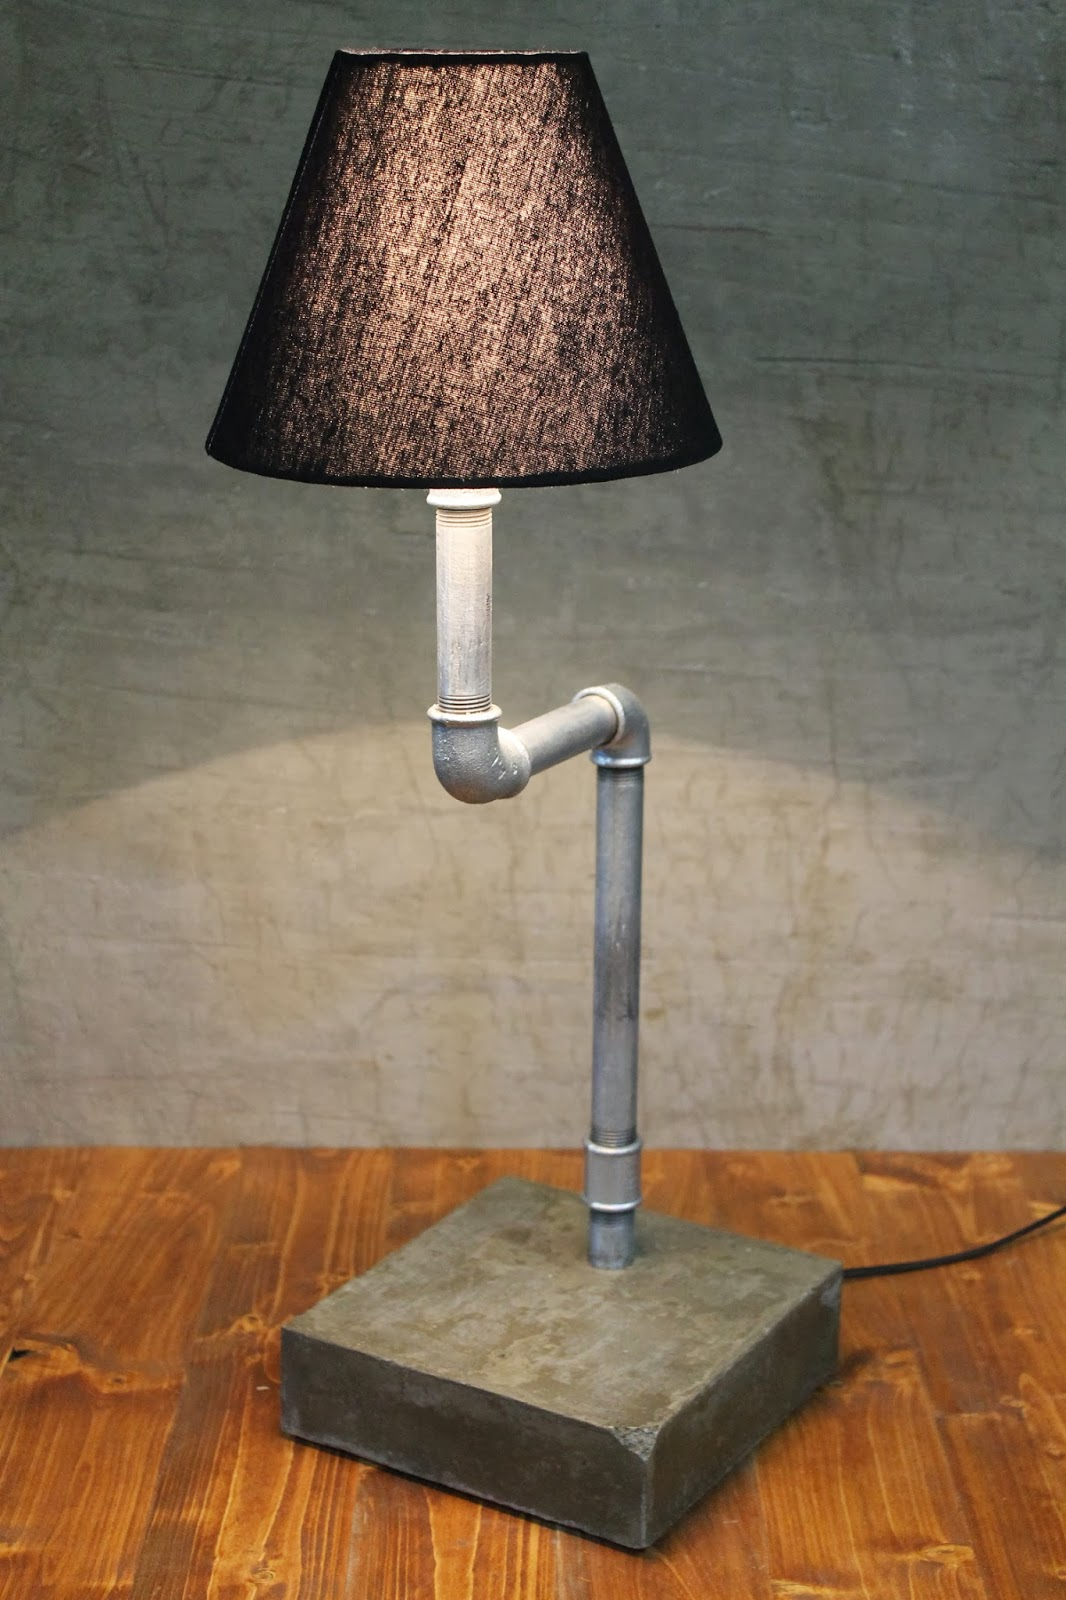 Wohnzimmer Lampe Industrial Industrial Style Lampen Industrial Lampen Beleuchtung